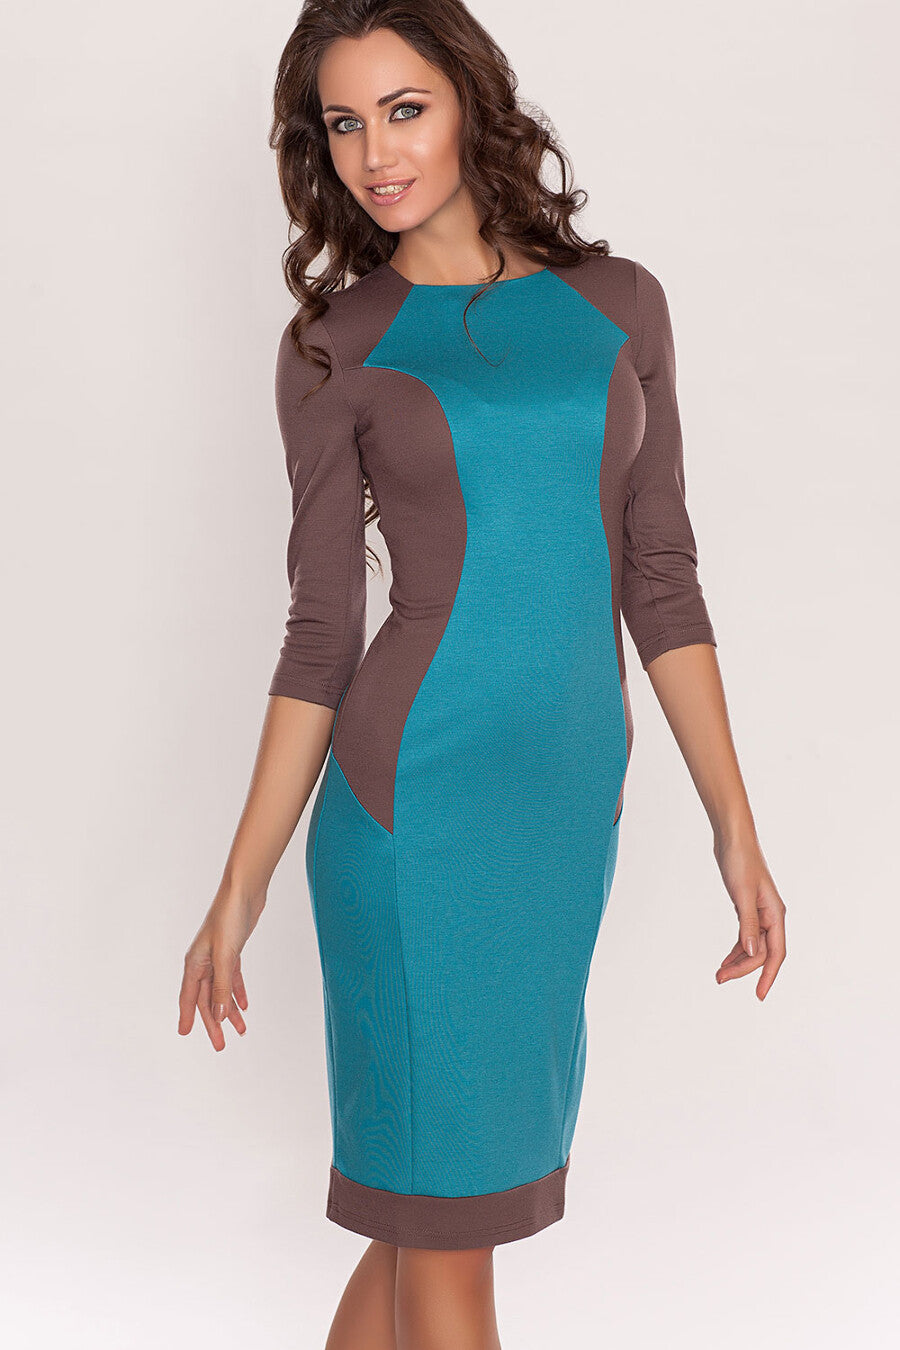 Dress DSP-168-14 hard case-turquoise/cocoa